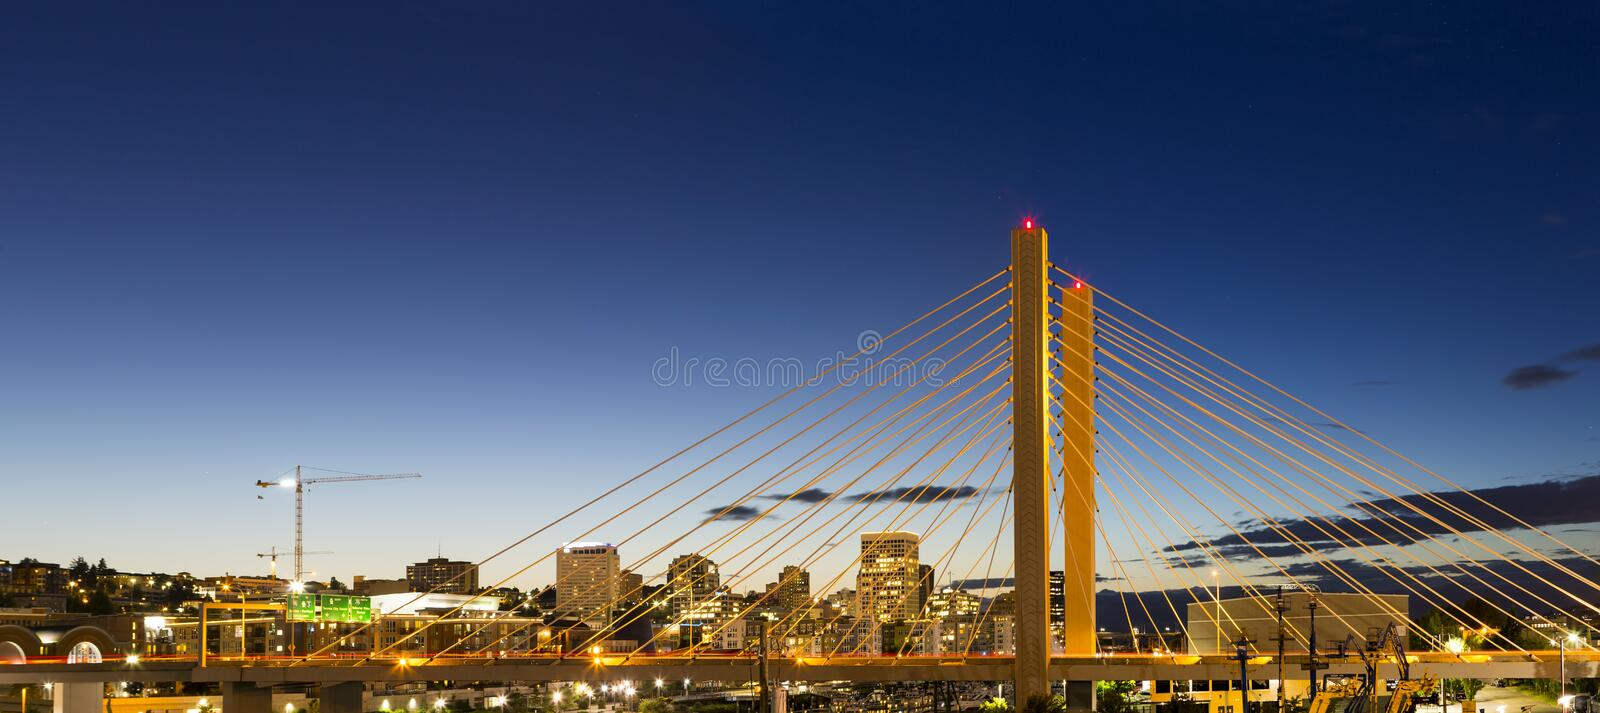 East 21st Street Bridge in Tacoma WA at Blue Hour. East 21st Street over Thea Foss Waterway in Tacoma Washington during evening blue hour panorama stock images